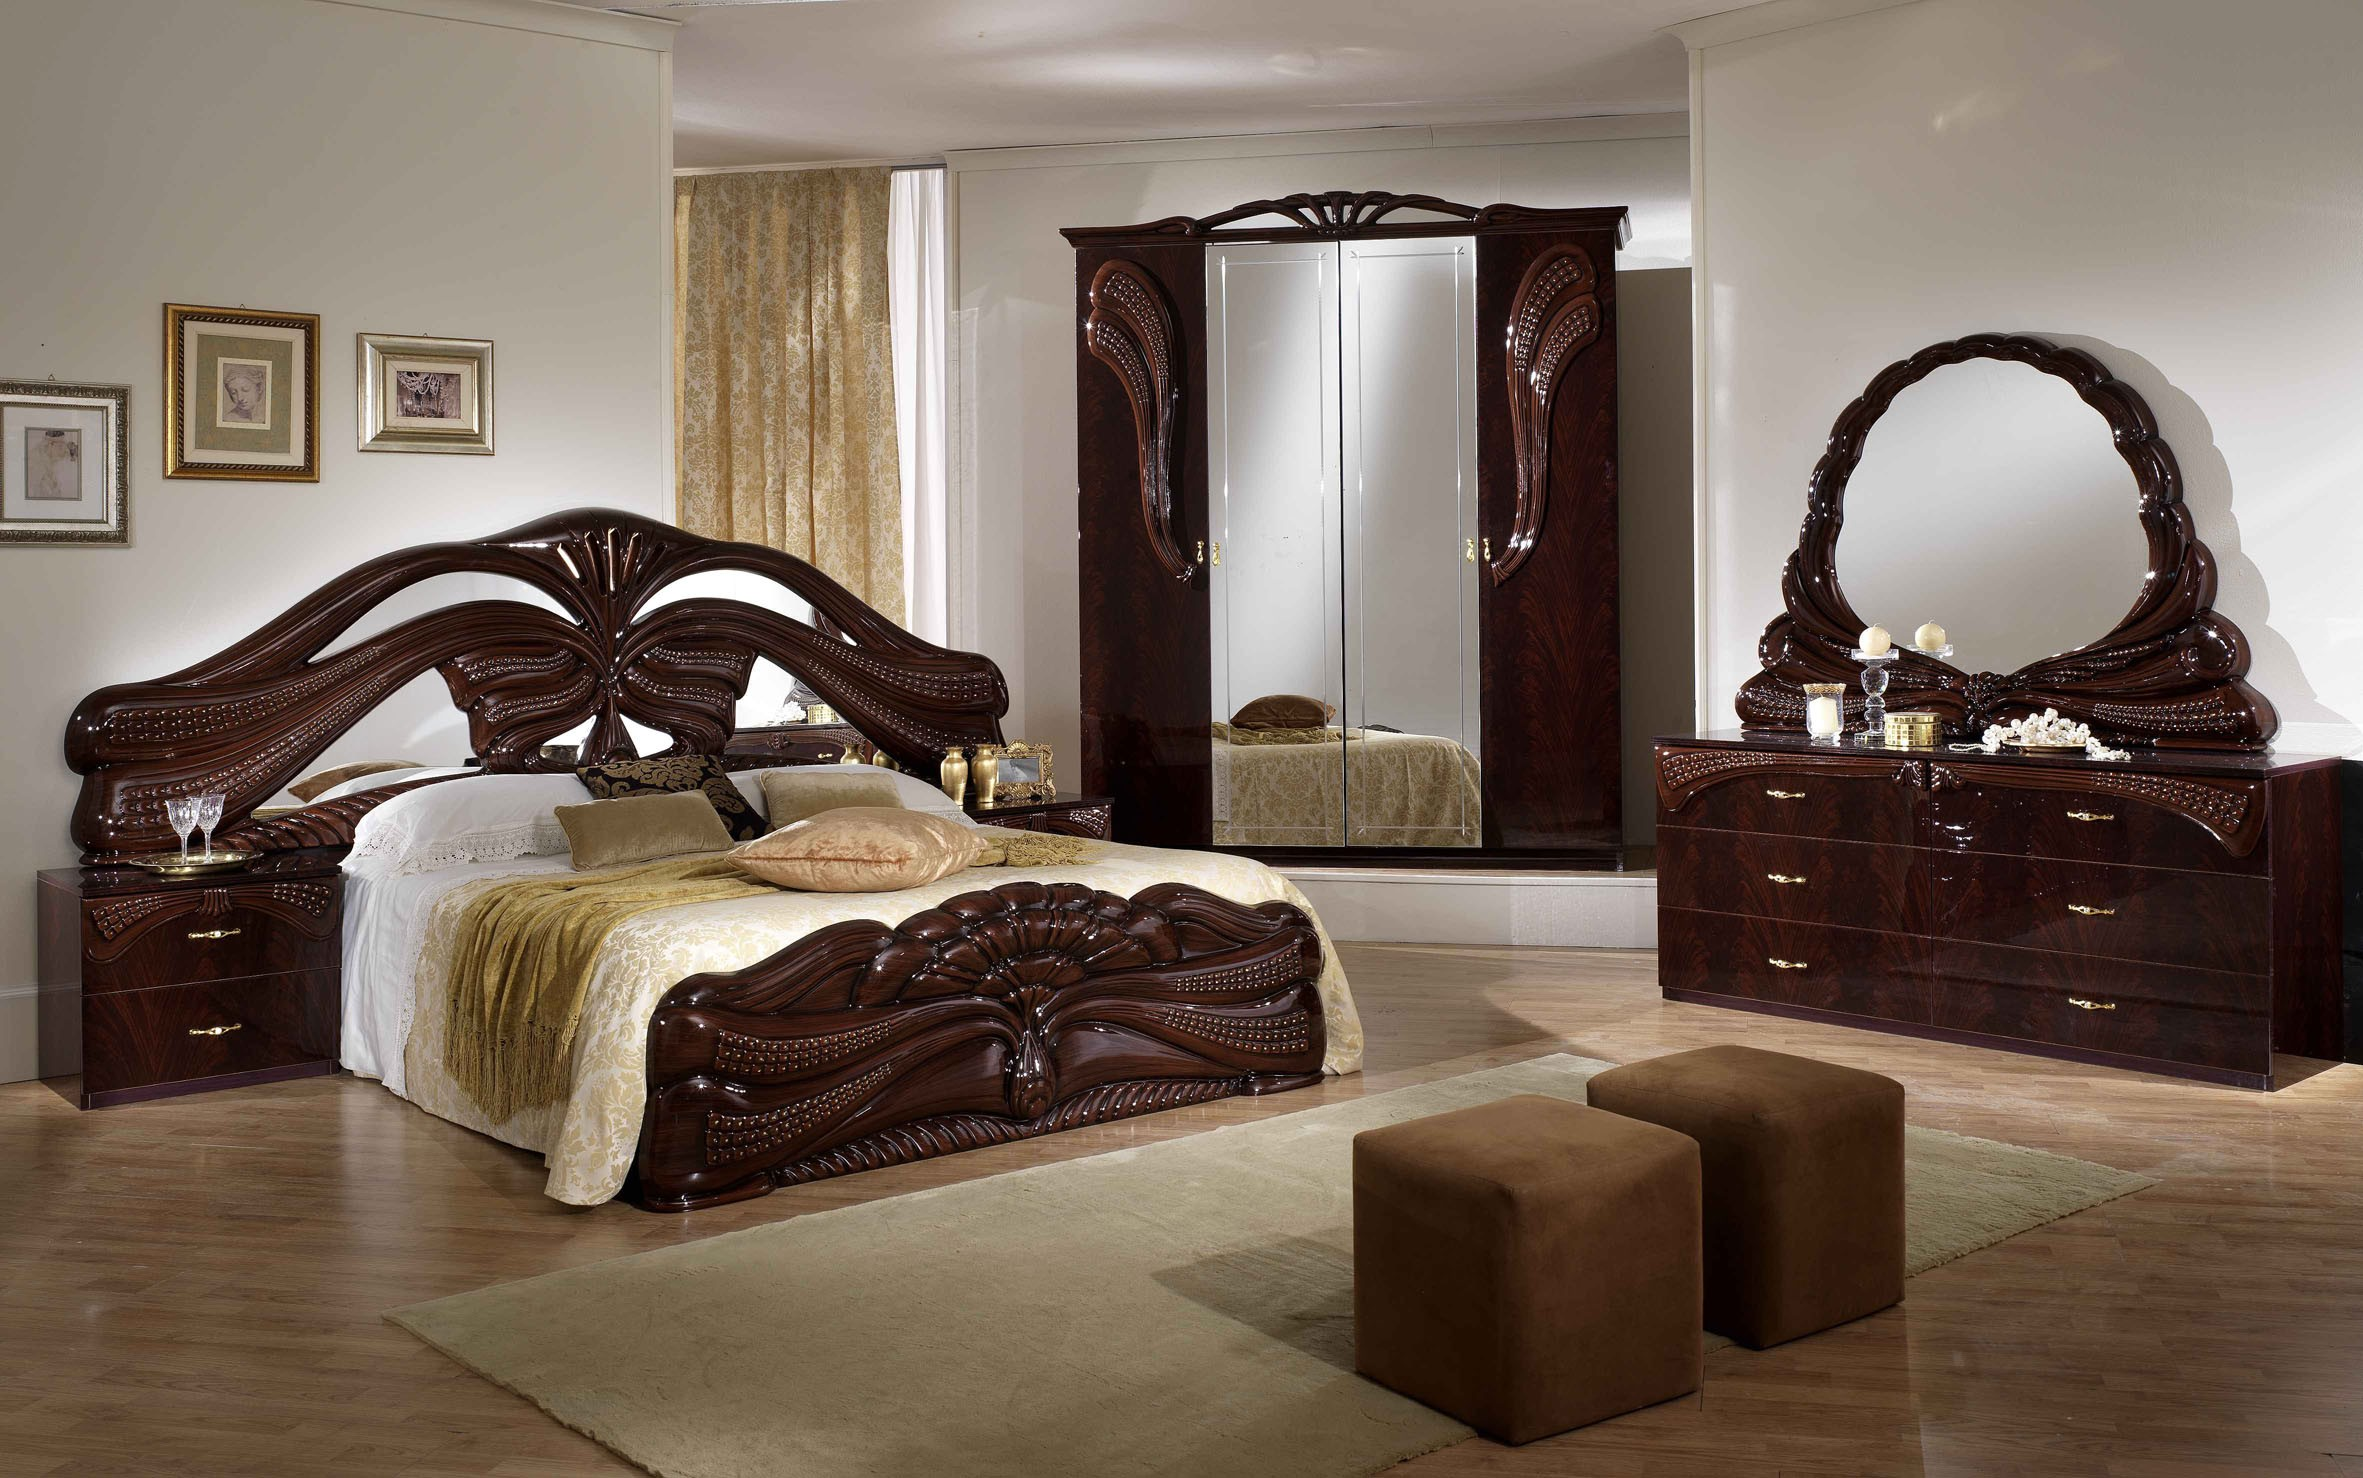 decoration baroque pas cher maison design. Black Bedroom Furniture Sets. Home Design Ideas